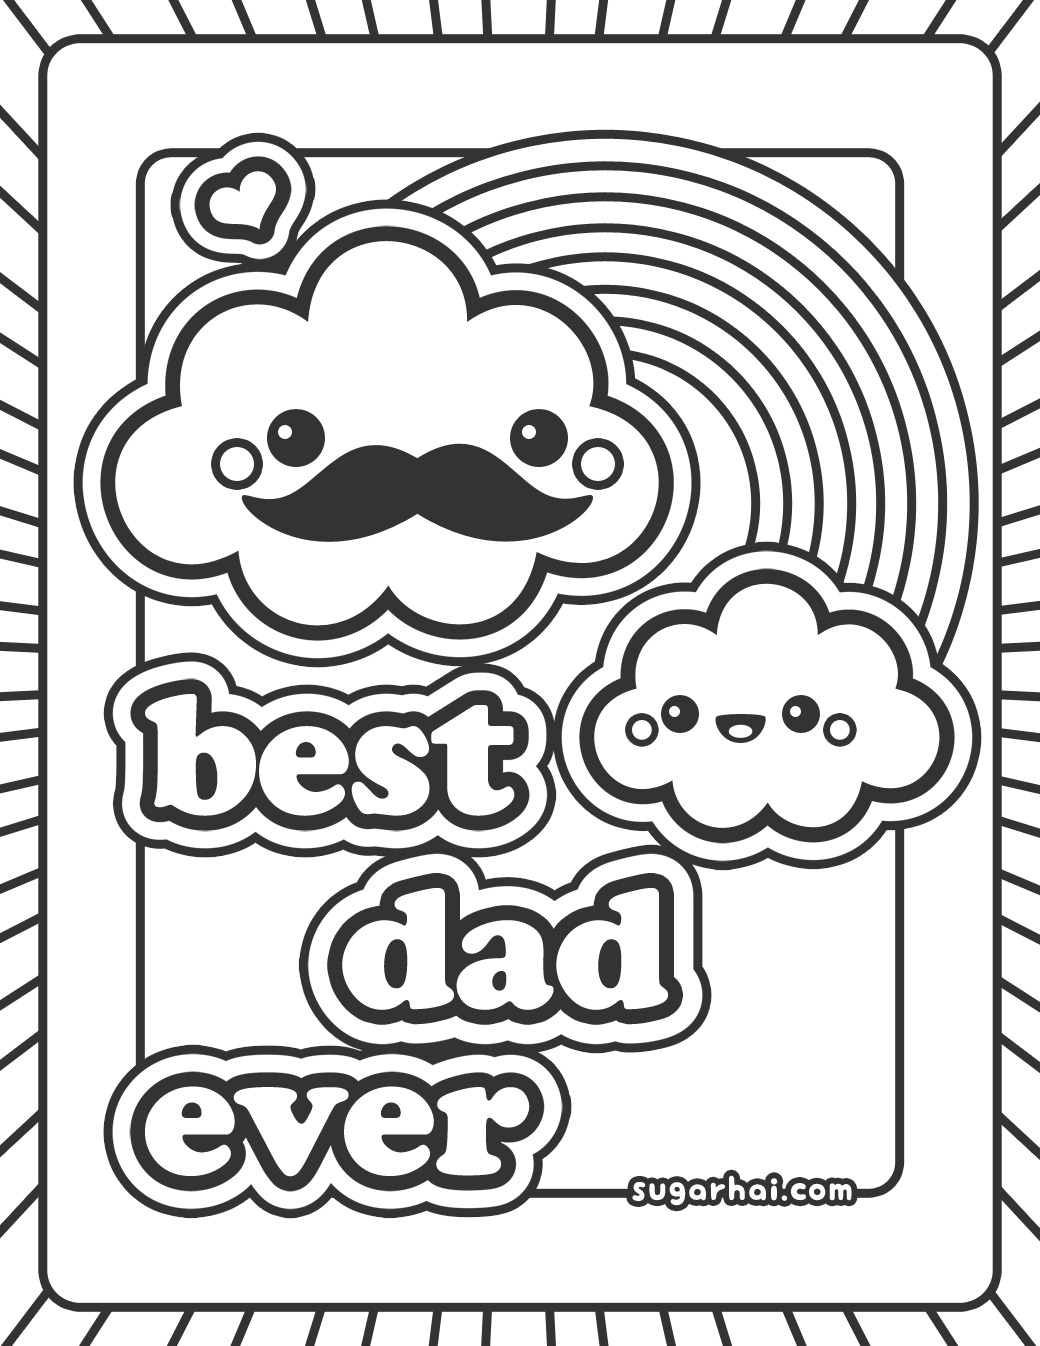 Free Best Dad Ever Coloring Page Fathers Day Coloring Page Happy Birthday Coloring Pages Birthday Coloring Pages